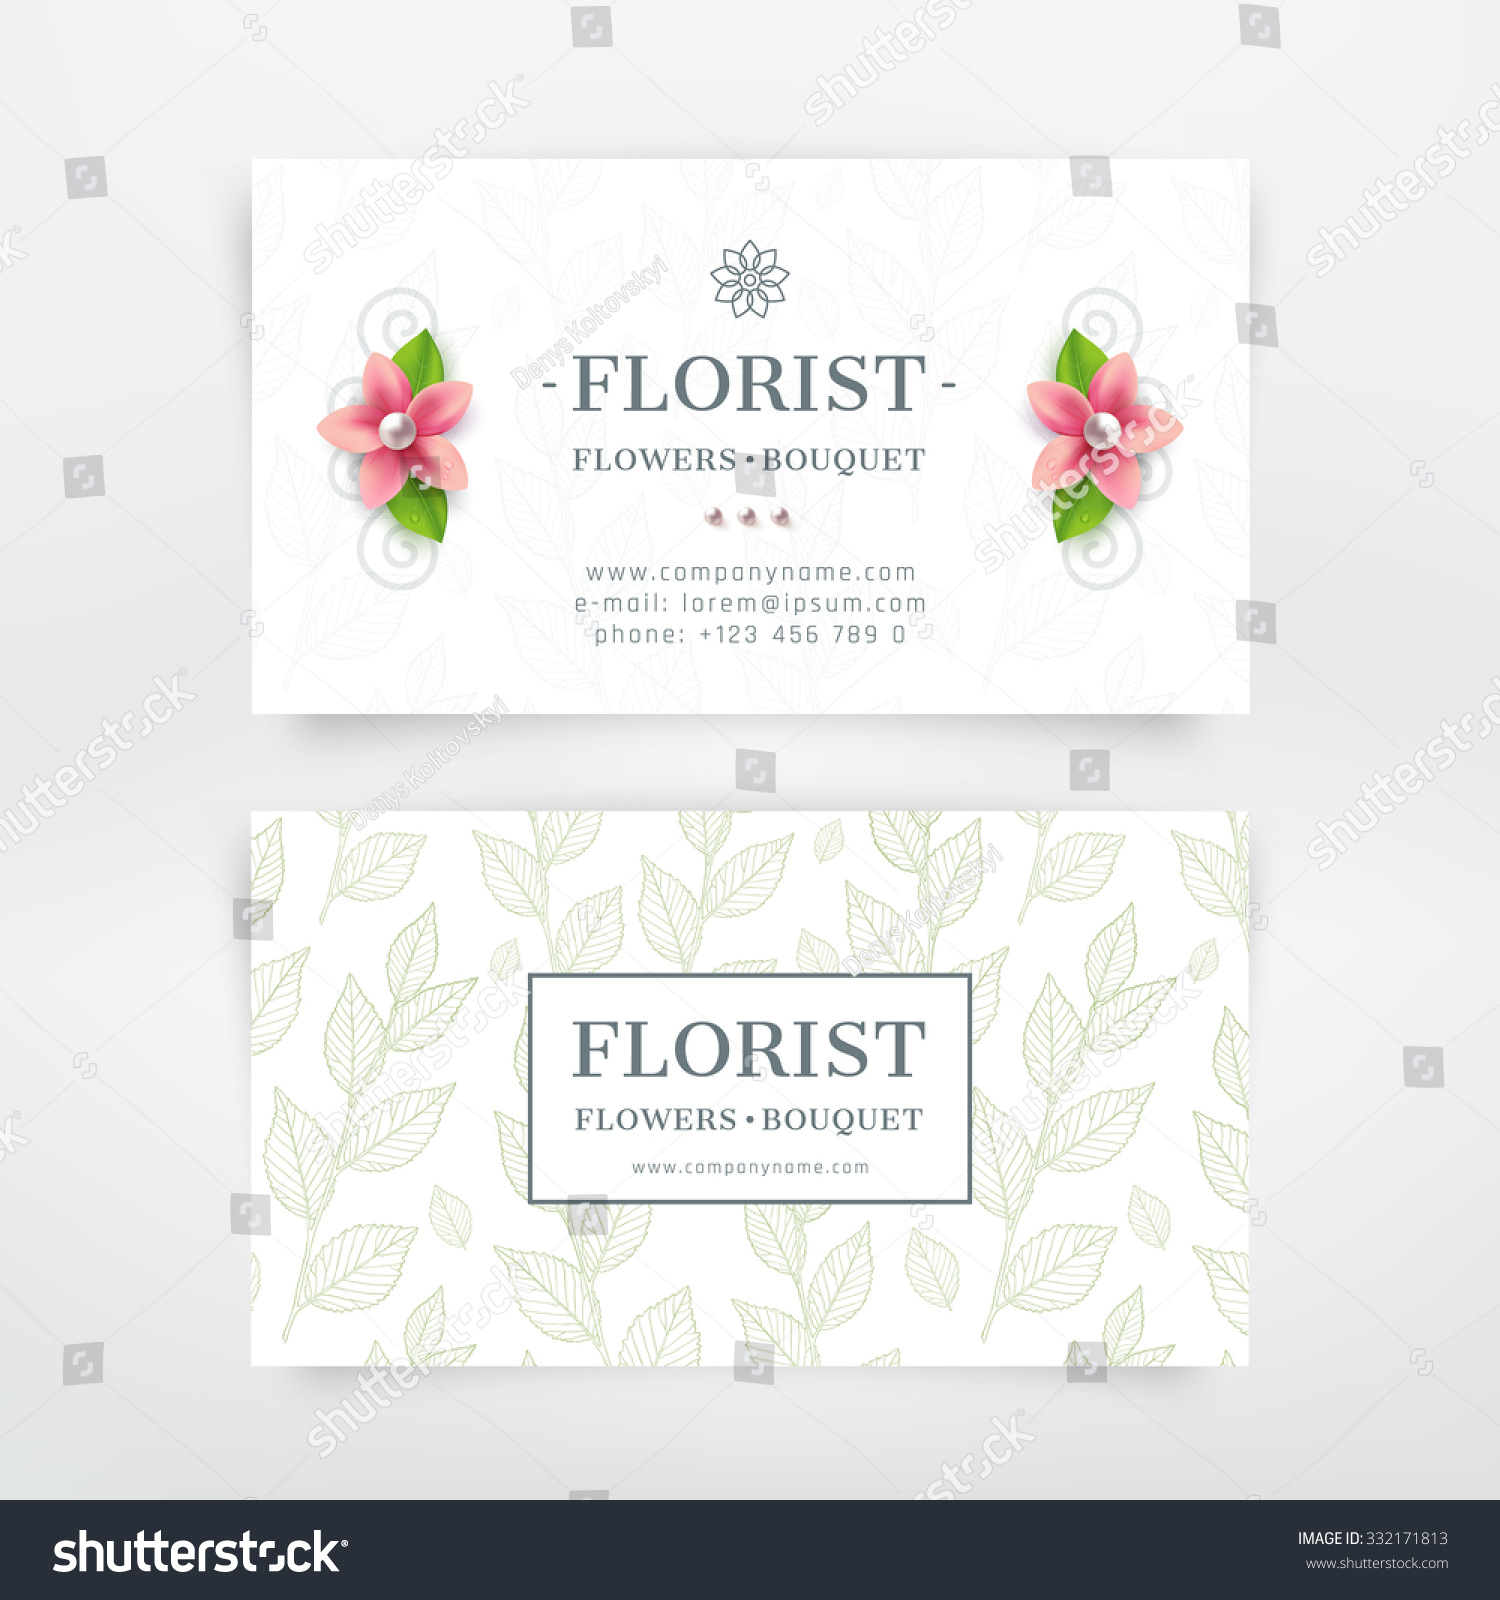 Florist business card design flower branch stock vector for Florist business cards